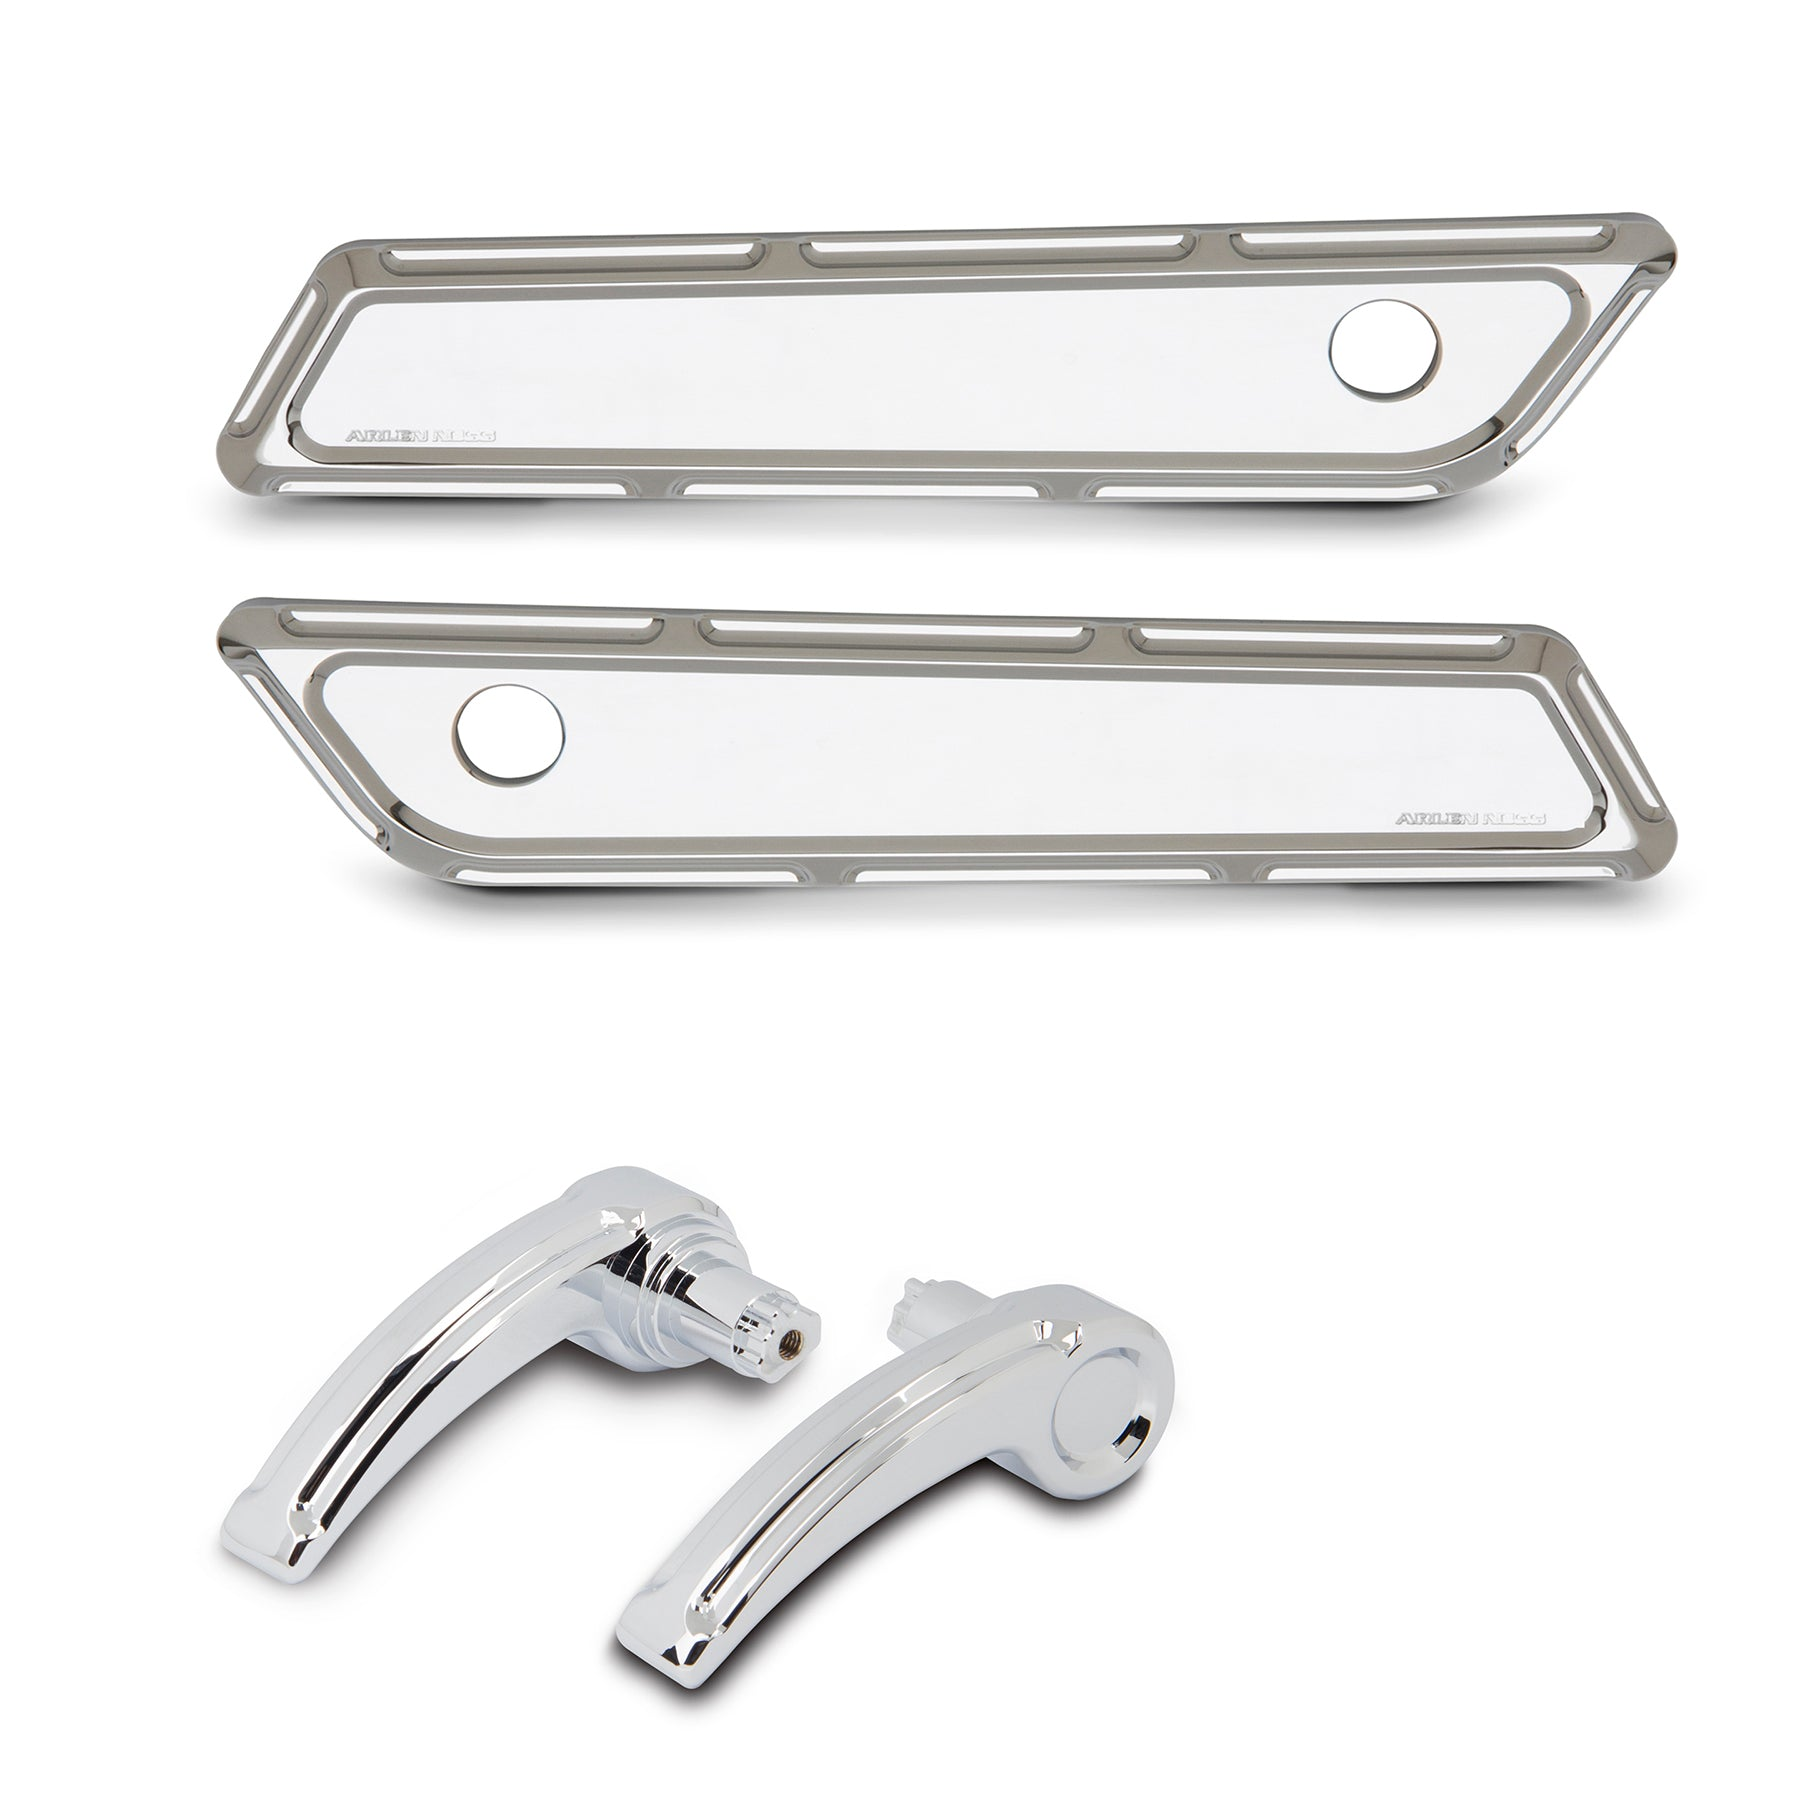 Beveled Saddlebag Latch & Lid Levers, Chrome